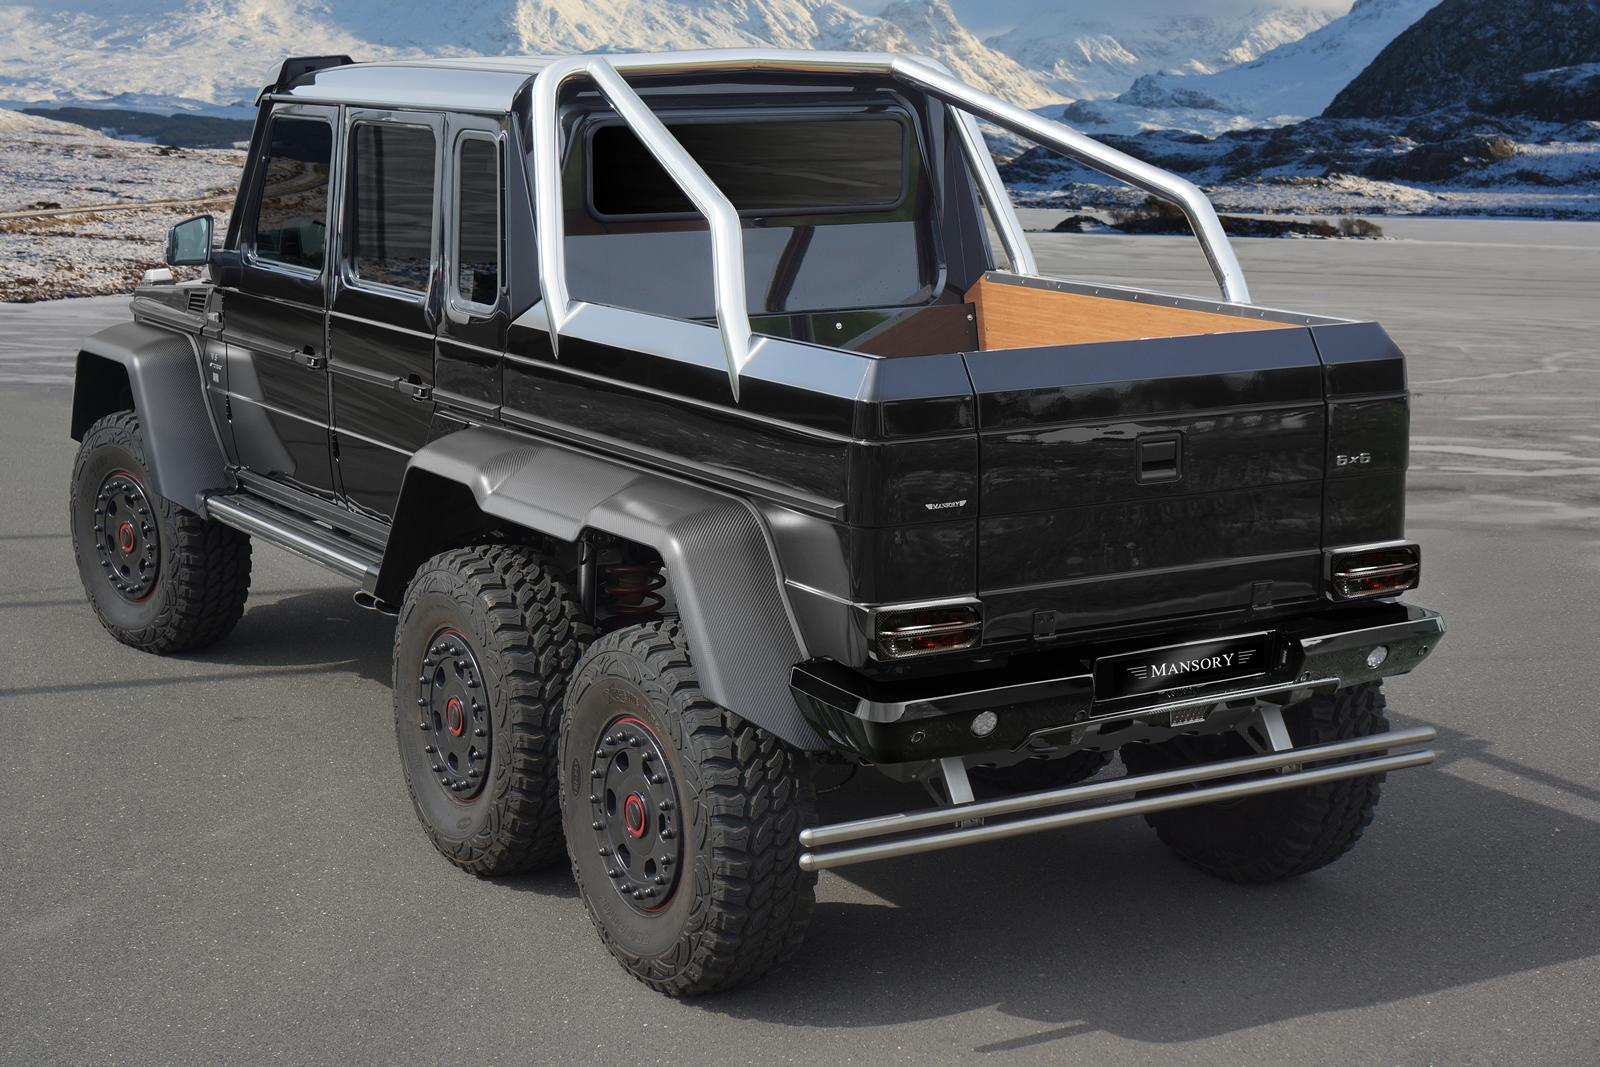 mansory mercedes benz g63 amg 6x6 picture 101869. Black Bedroom Furniture Sets. Home Design Ideas